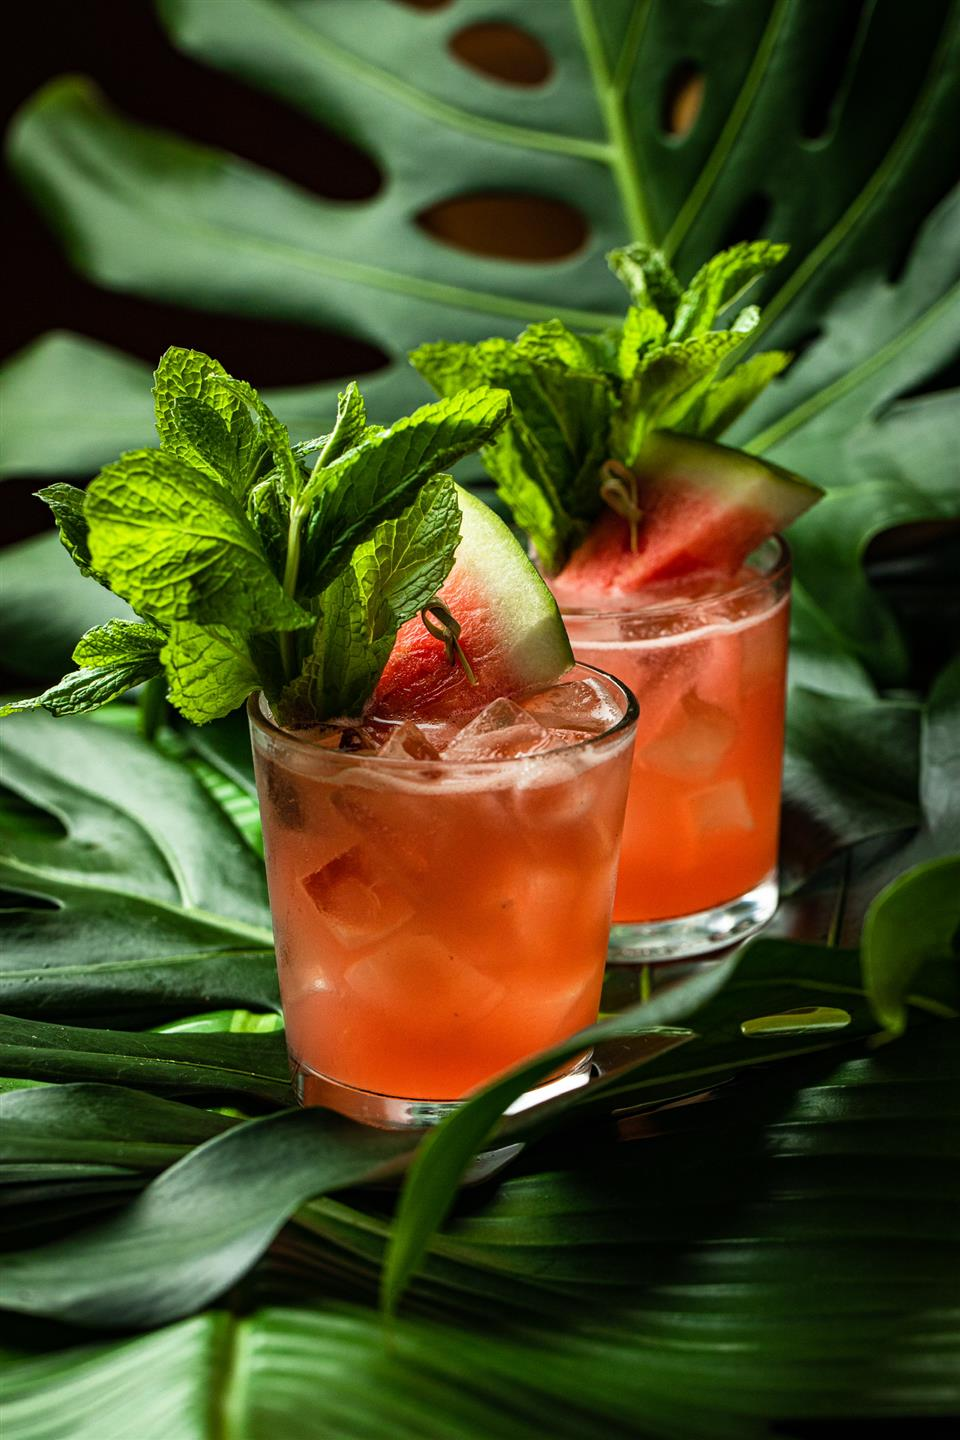 two cocktails in glass cups garnished with mint and a watermelon slice